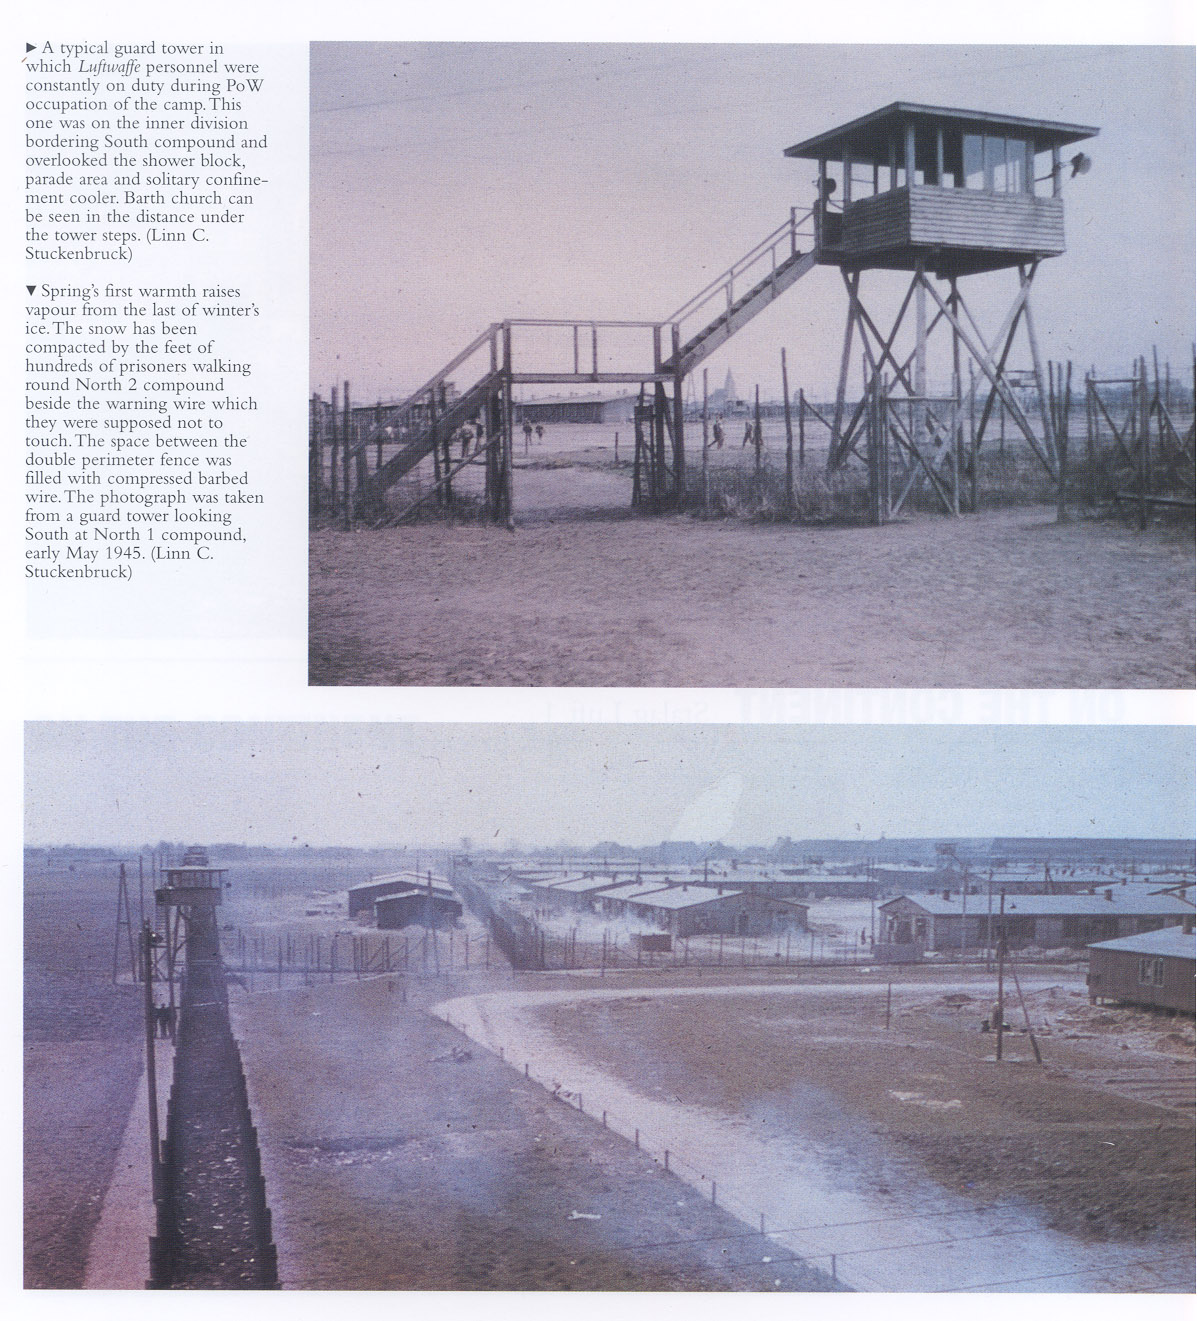 Stalag Luft I color photos page 2